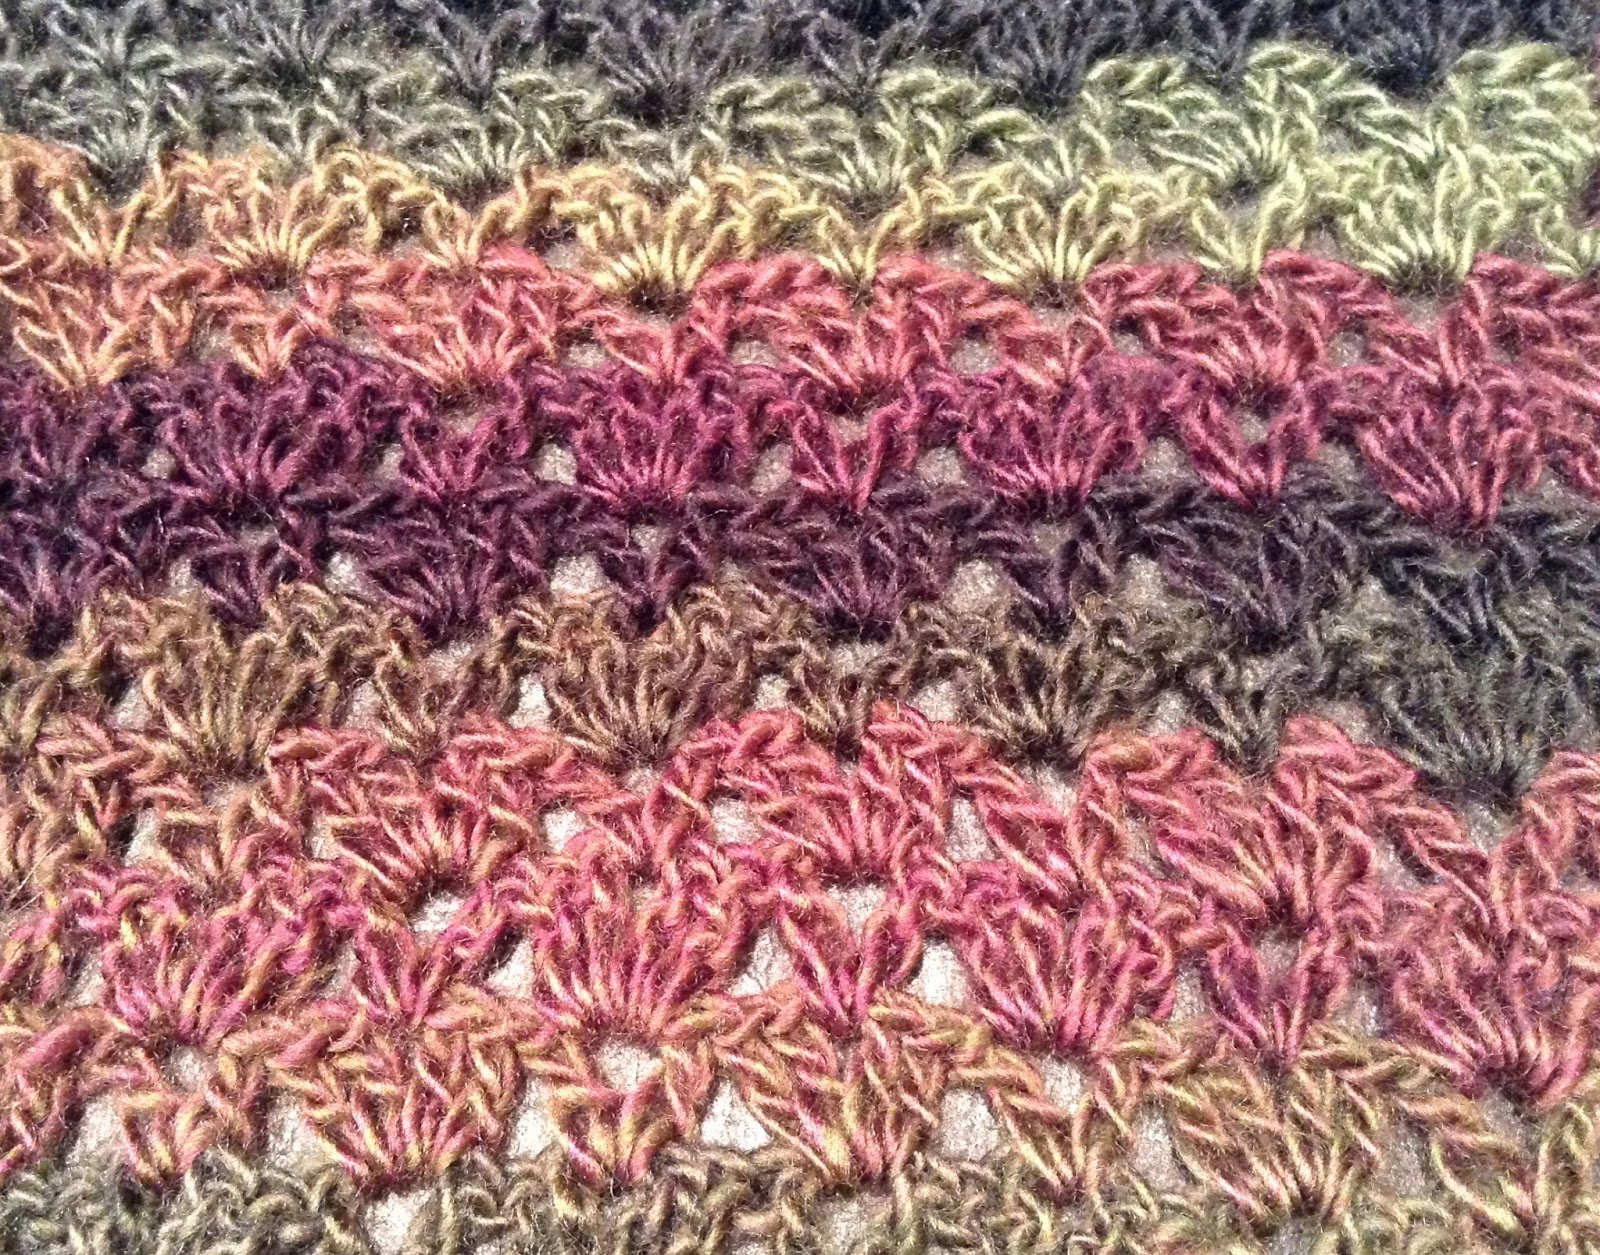 What I Make With My Hands - I Give With My Heart: Isar Scarf in Red ...